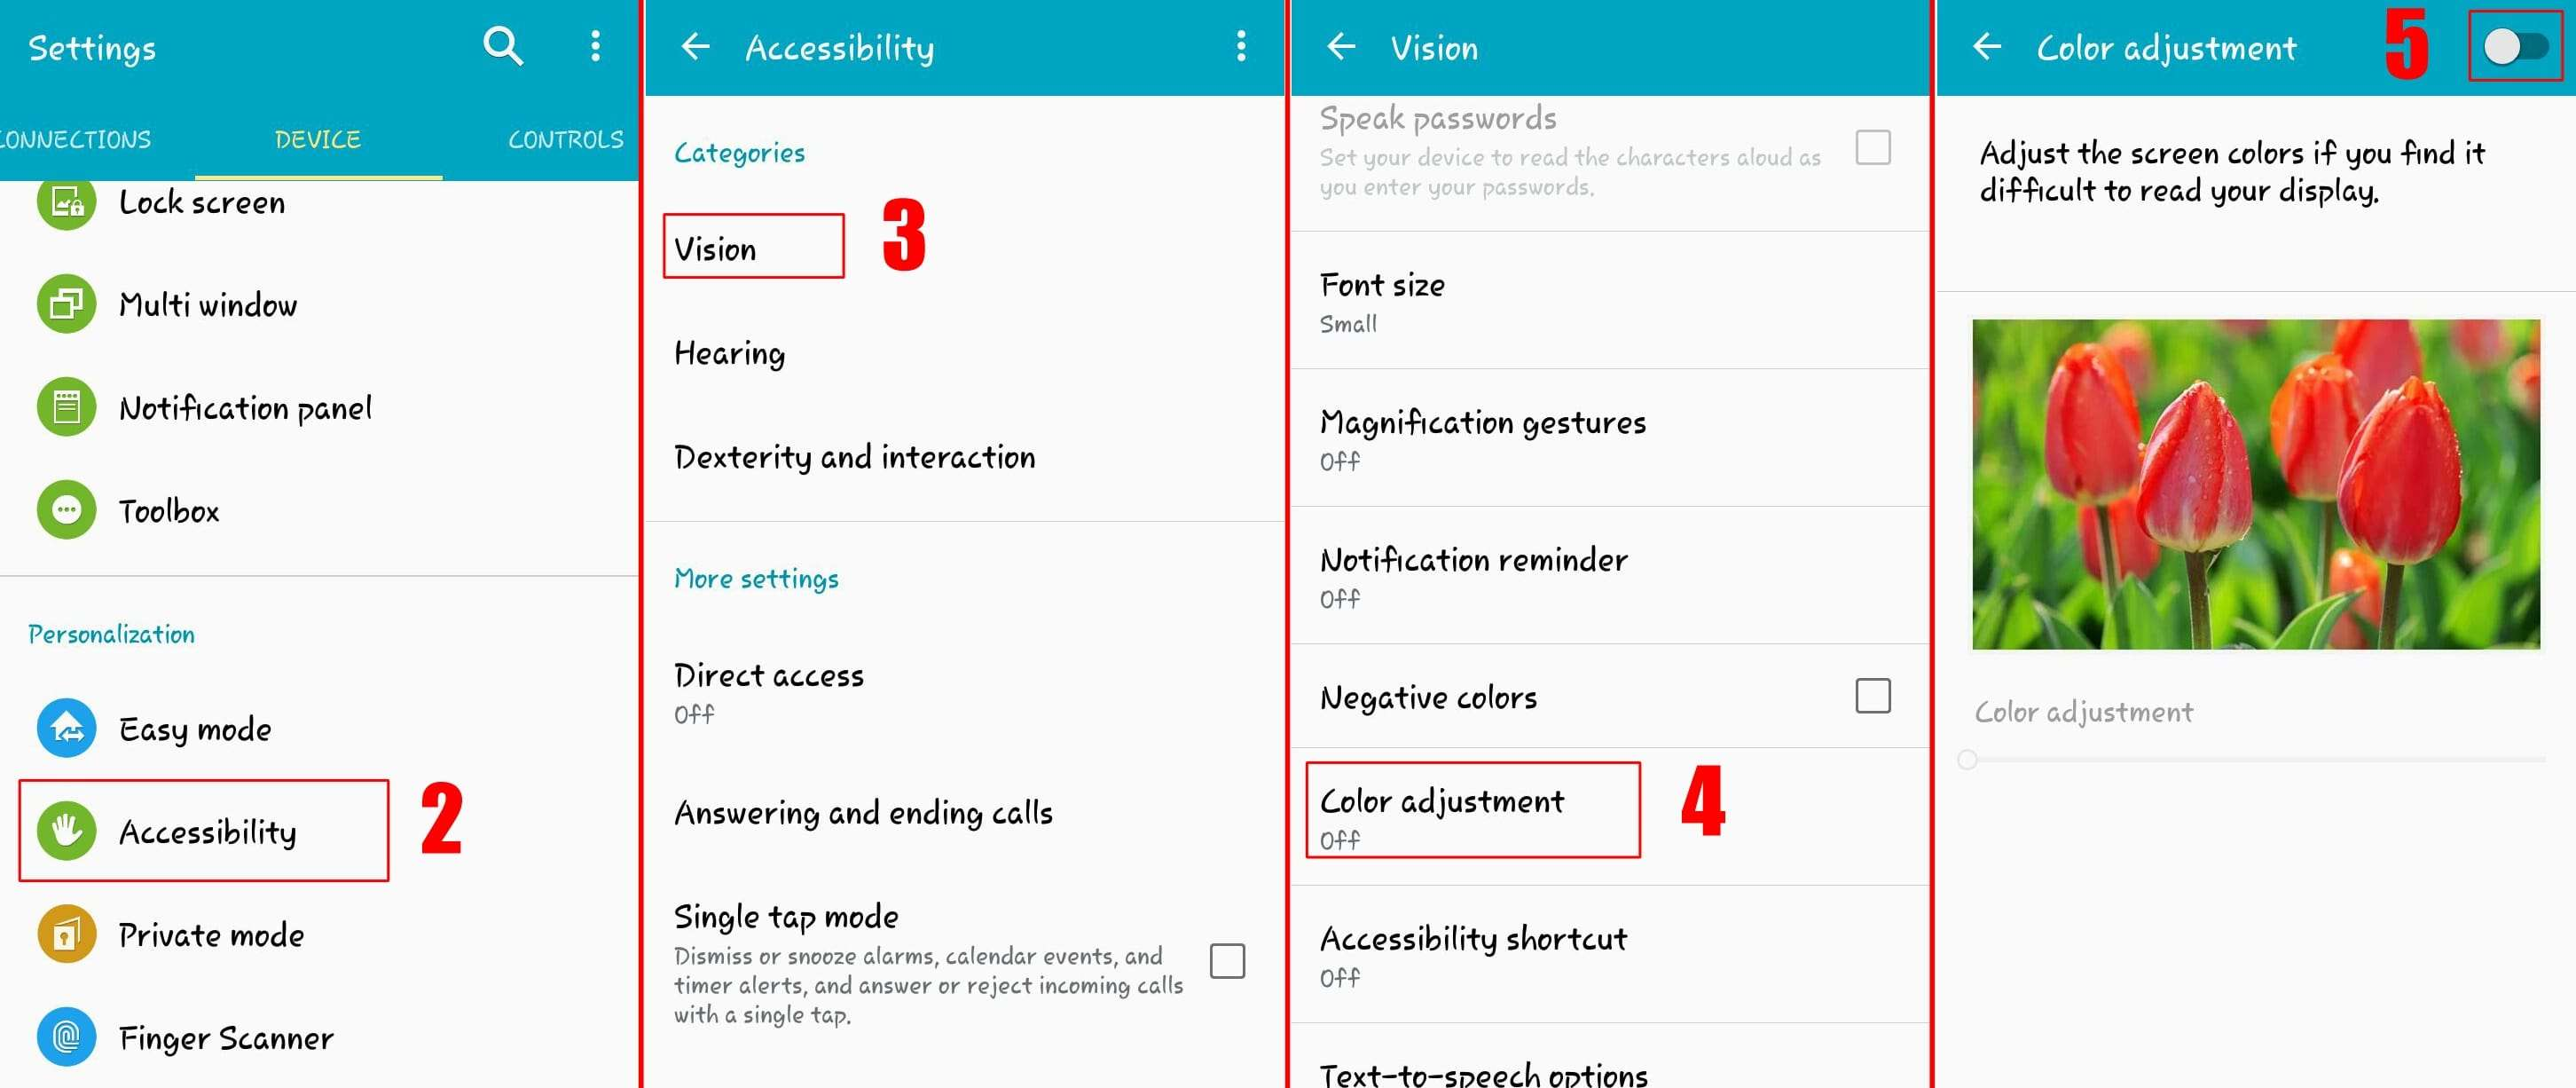 How to Adjust Samsung Screen Color Change Using Accessibility